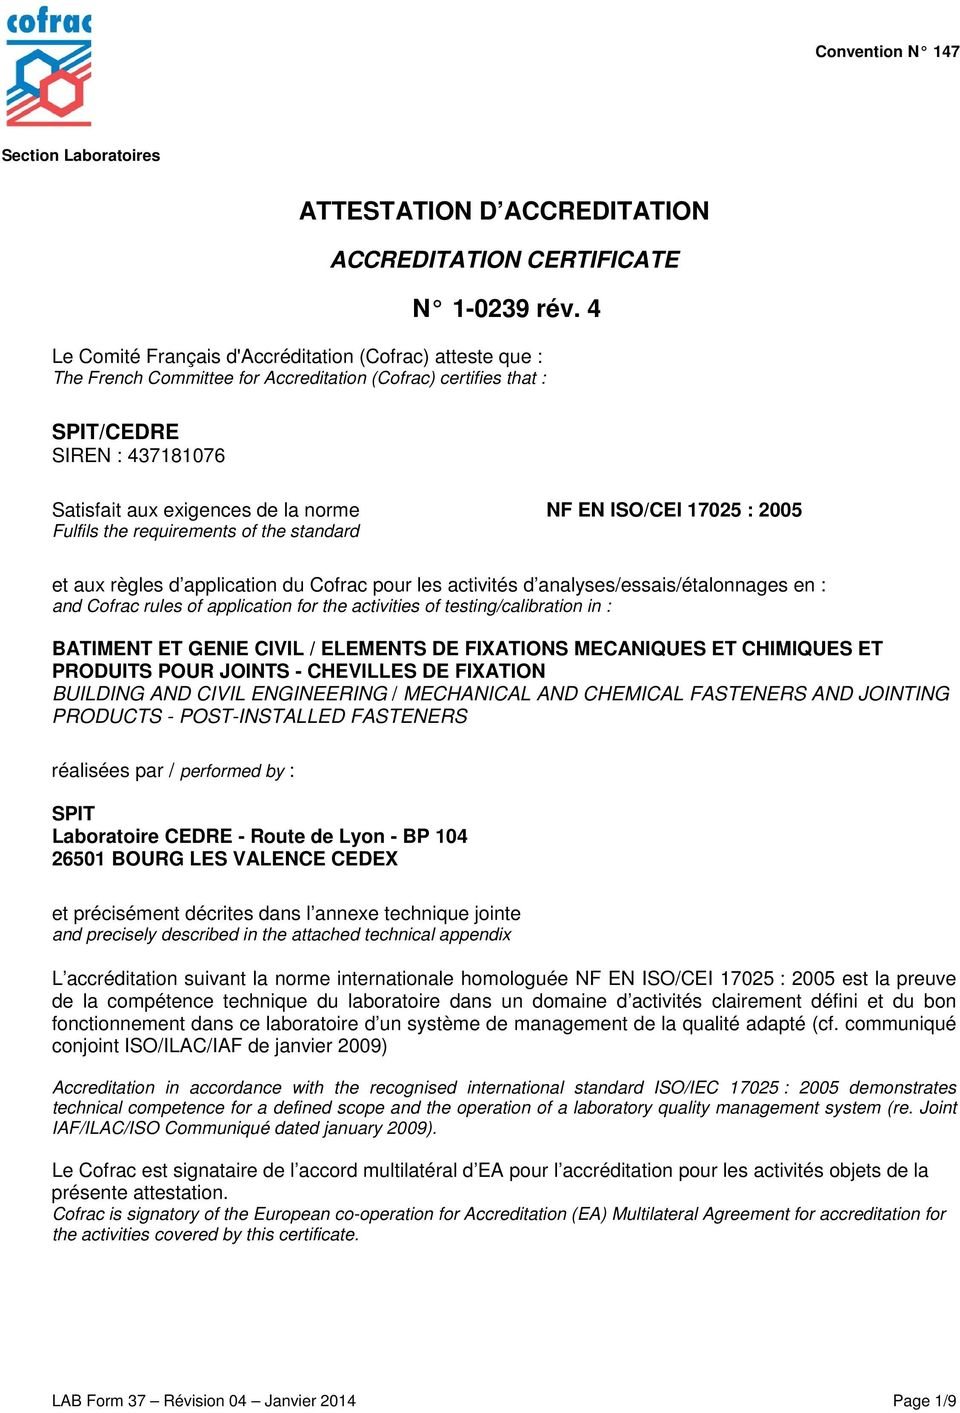 ISO/CEI 17025 : 2005 Fulfils the requirements of the standard et aux règles d application du Cofrac pour les activités d analyses/essais/étalonnages en : and Cofrac rules of application for the